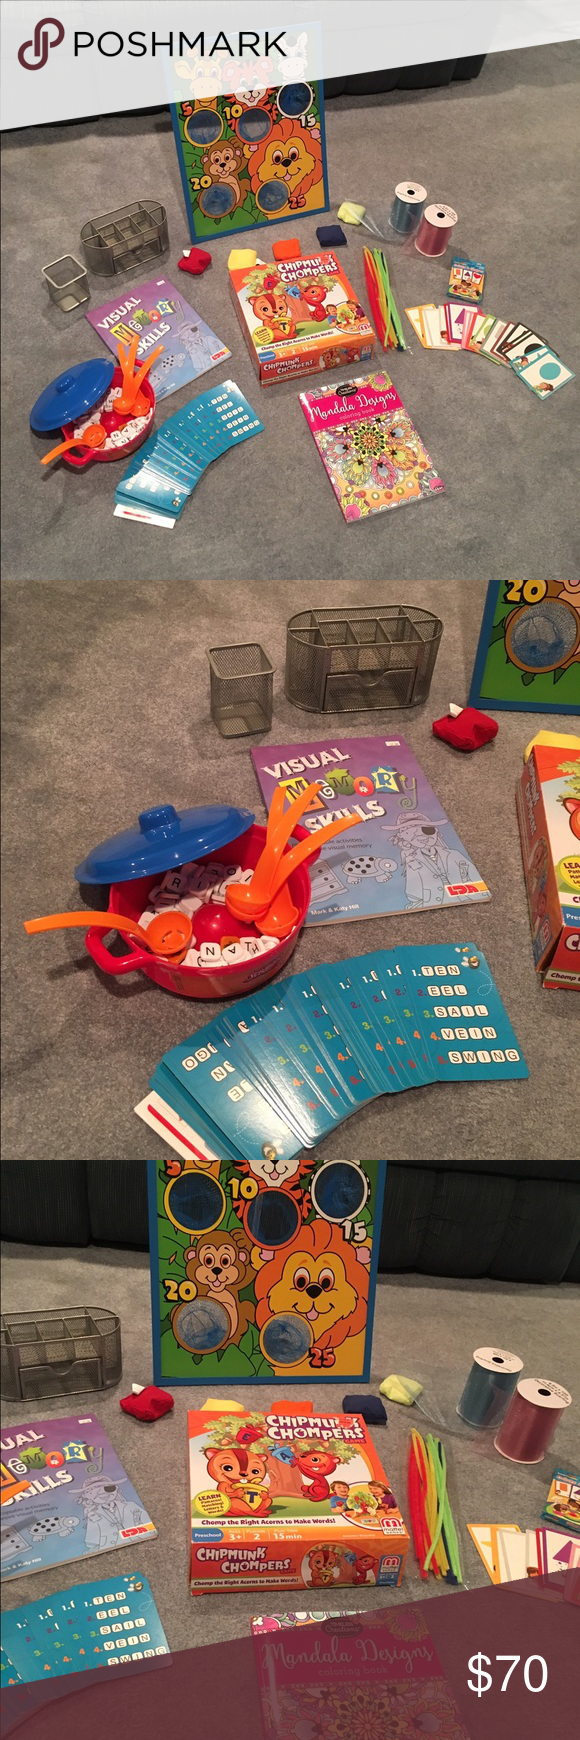 Fun Game Activity Bundle All In New Or Like Condition You Get A Coloring Book Colors And Shapes Flash Cards Blue Pink Ribbon Chipmunk Chomped